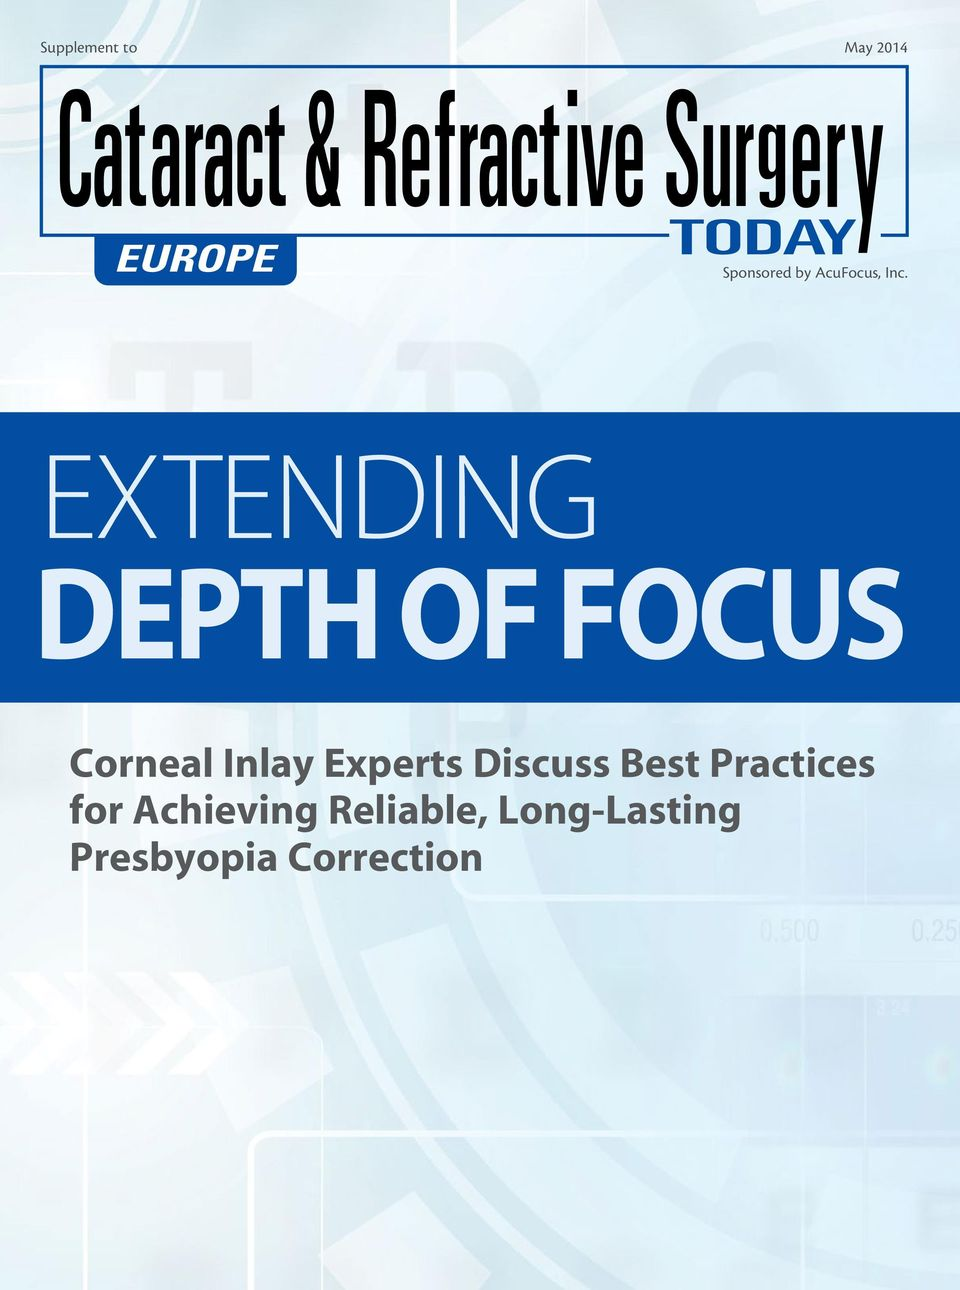 EXTENDING DEPTH OF FOCUS Corneal Inlay